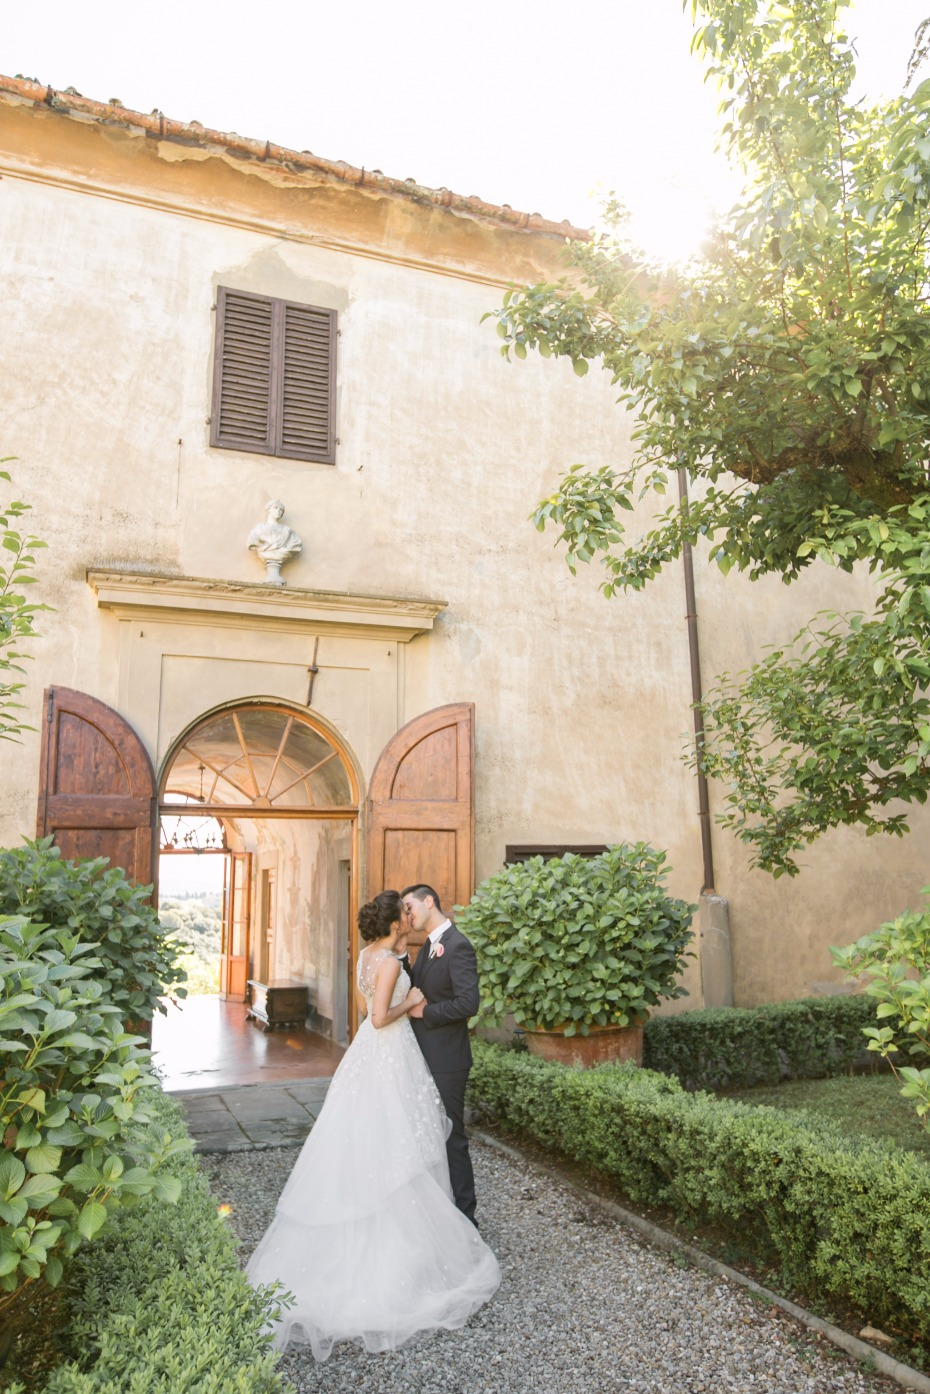 Villa Medicea wedding in Italy